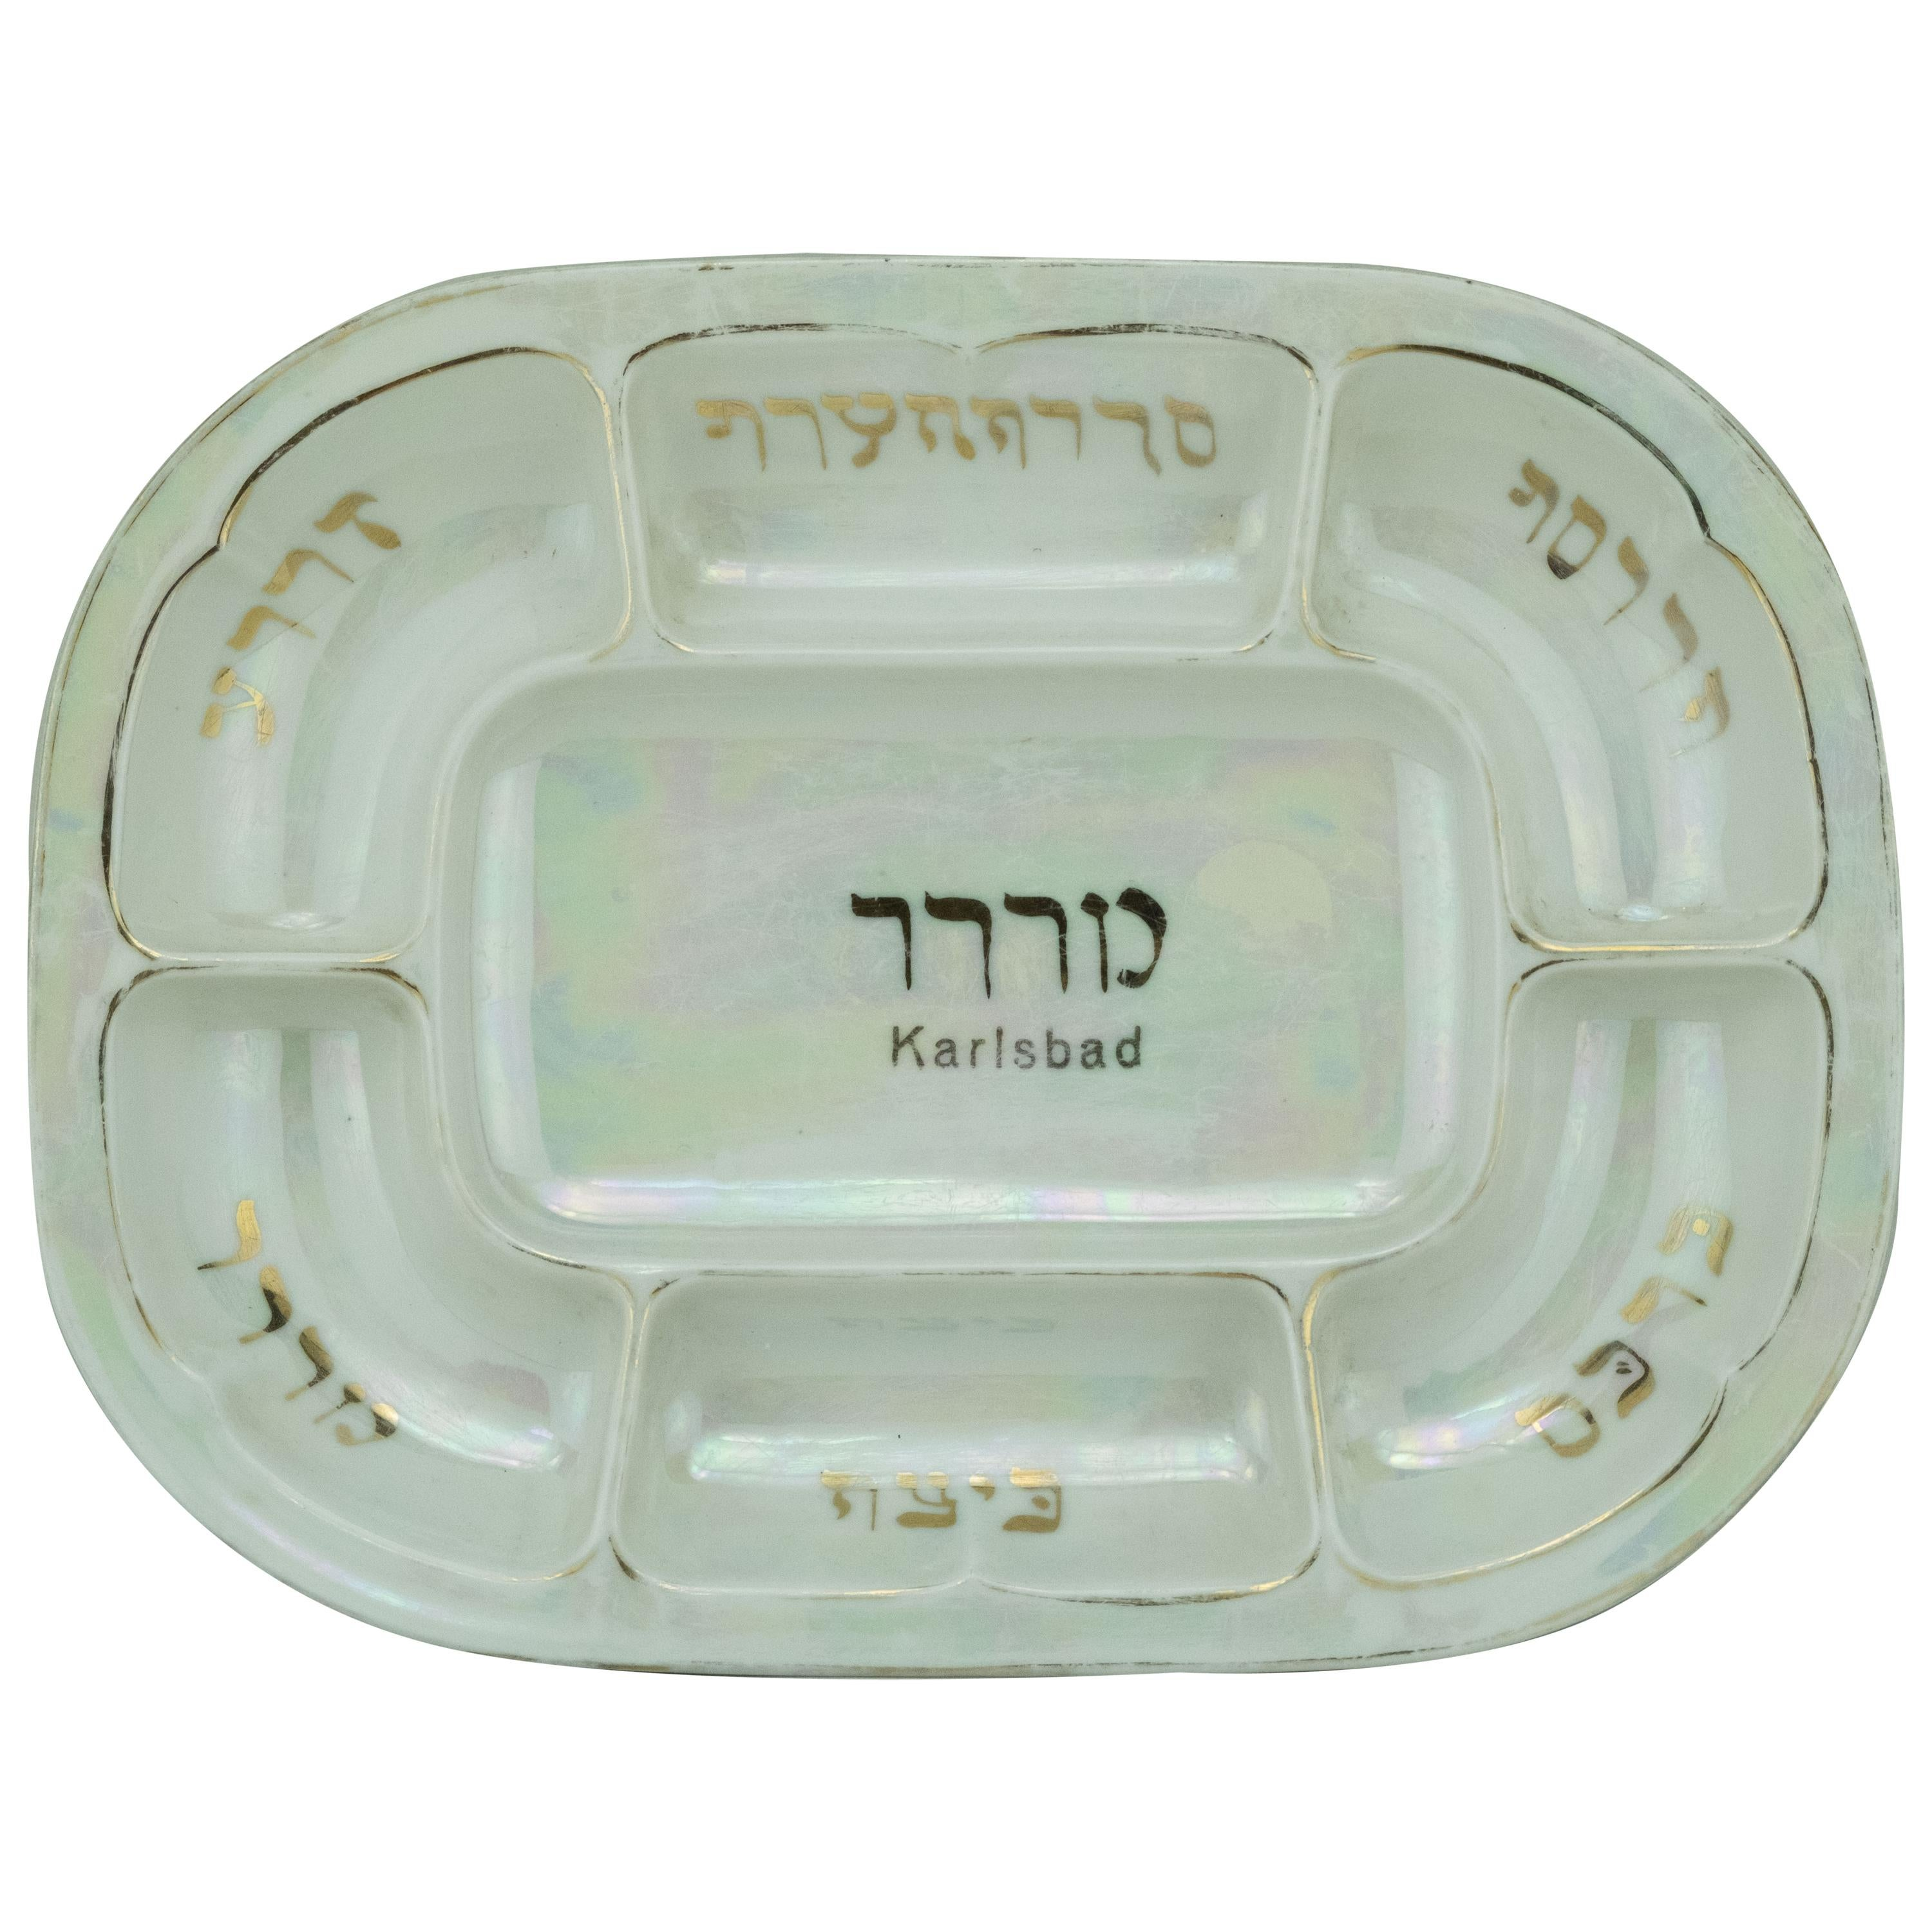 Early 20th Century Czech Porcelain Passover Seder Plate